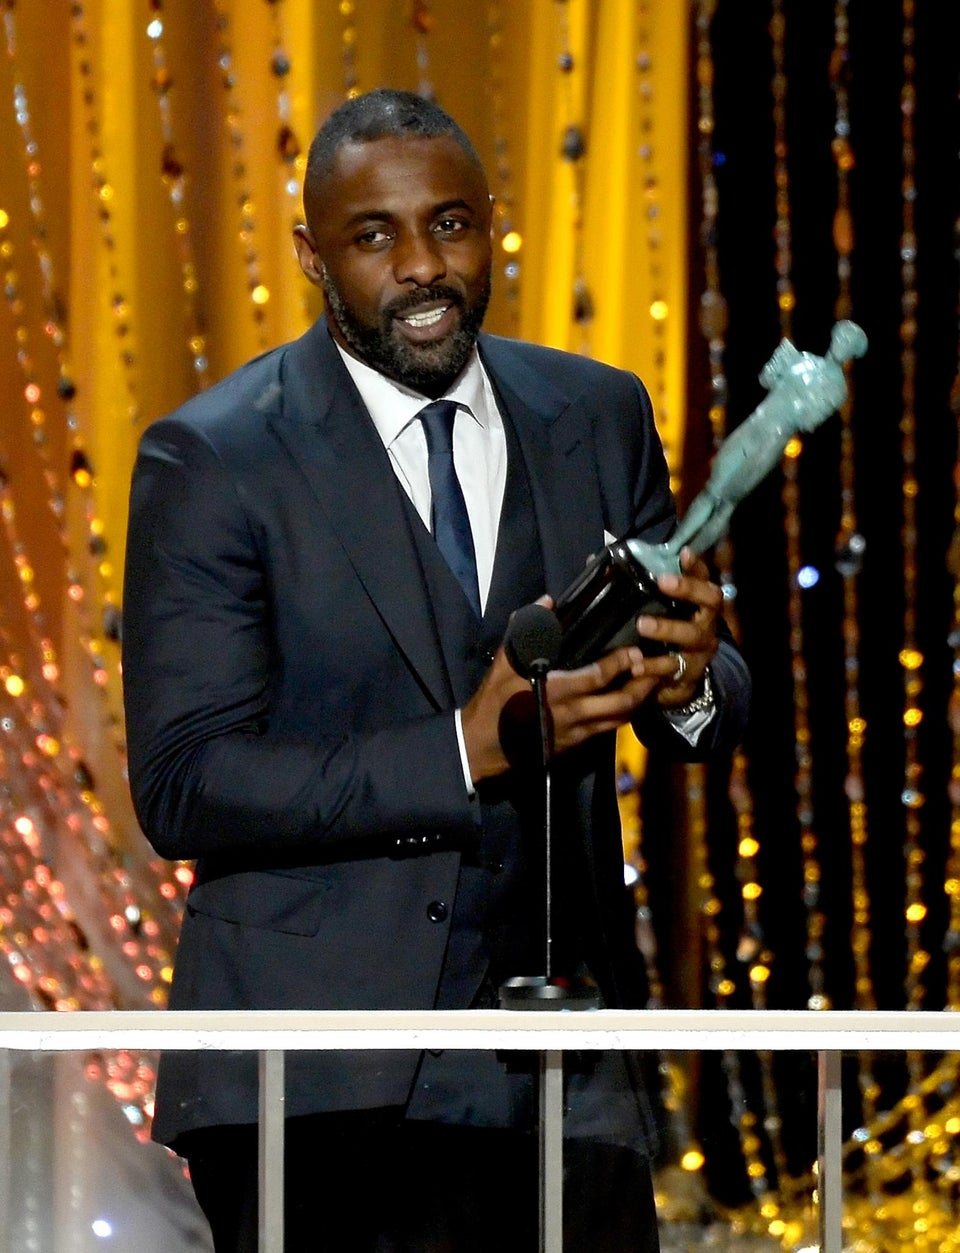 Idris Elba Takes Home SAG Awards for Both 'Luther' and 'Beasts of No Nation'